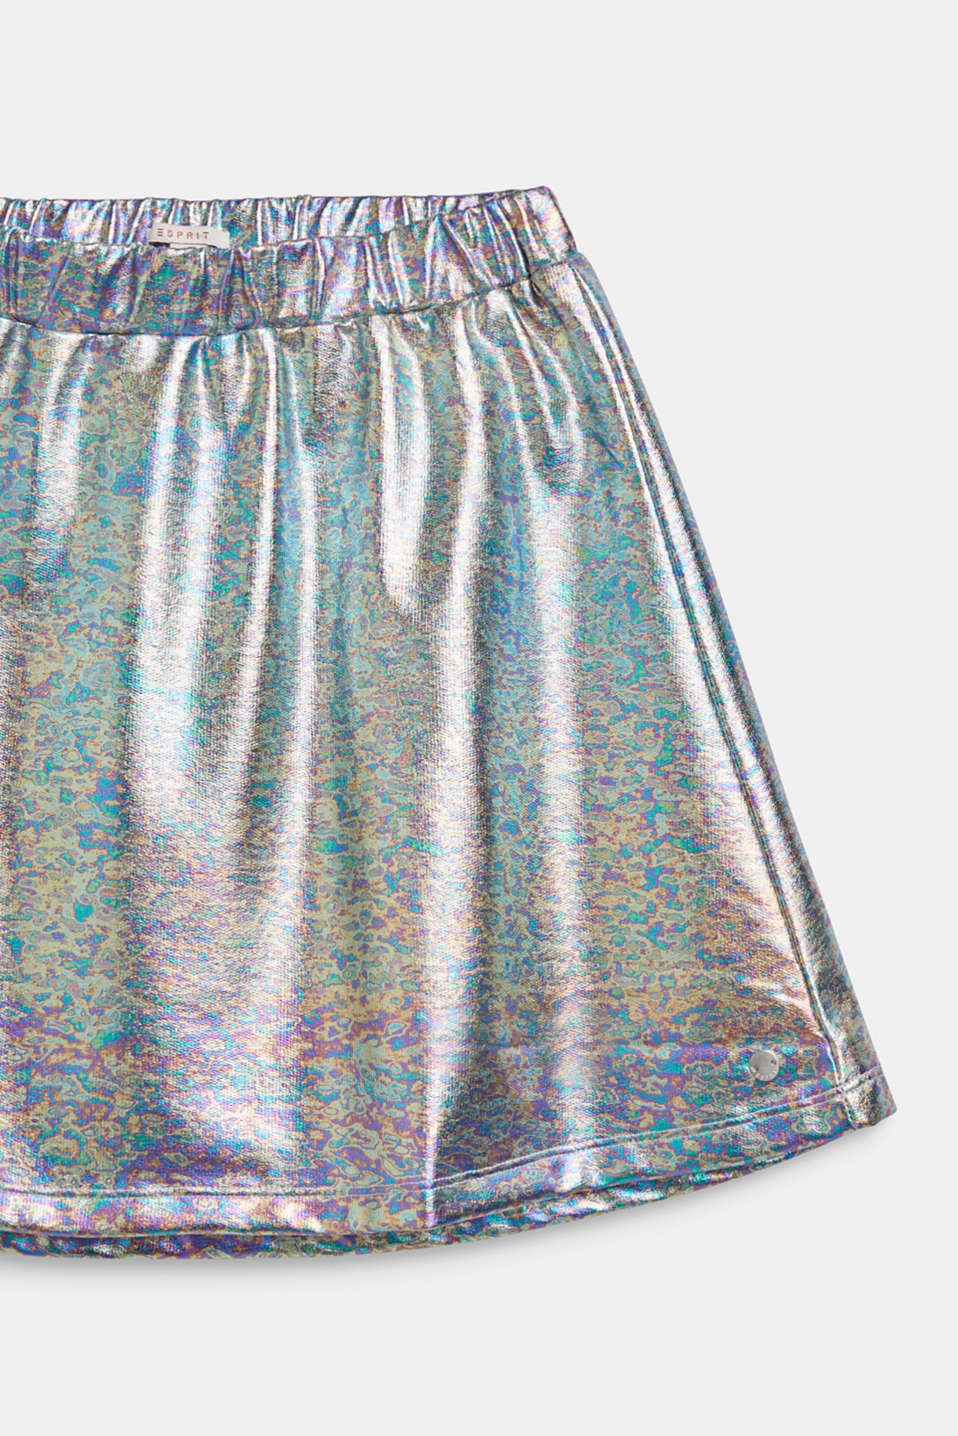 Skirt in an iridescent metallic finish, LCSILVER, detail image number 2